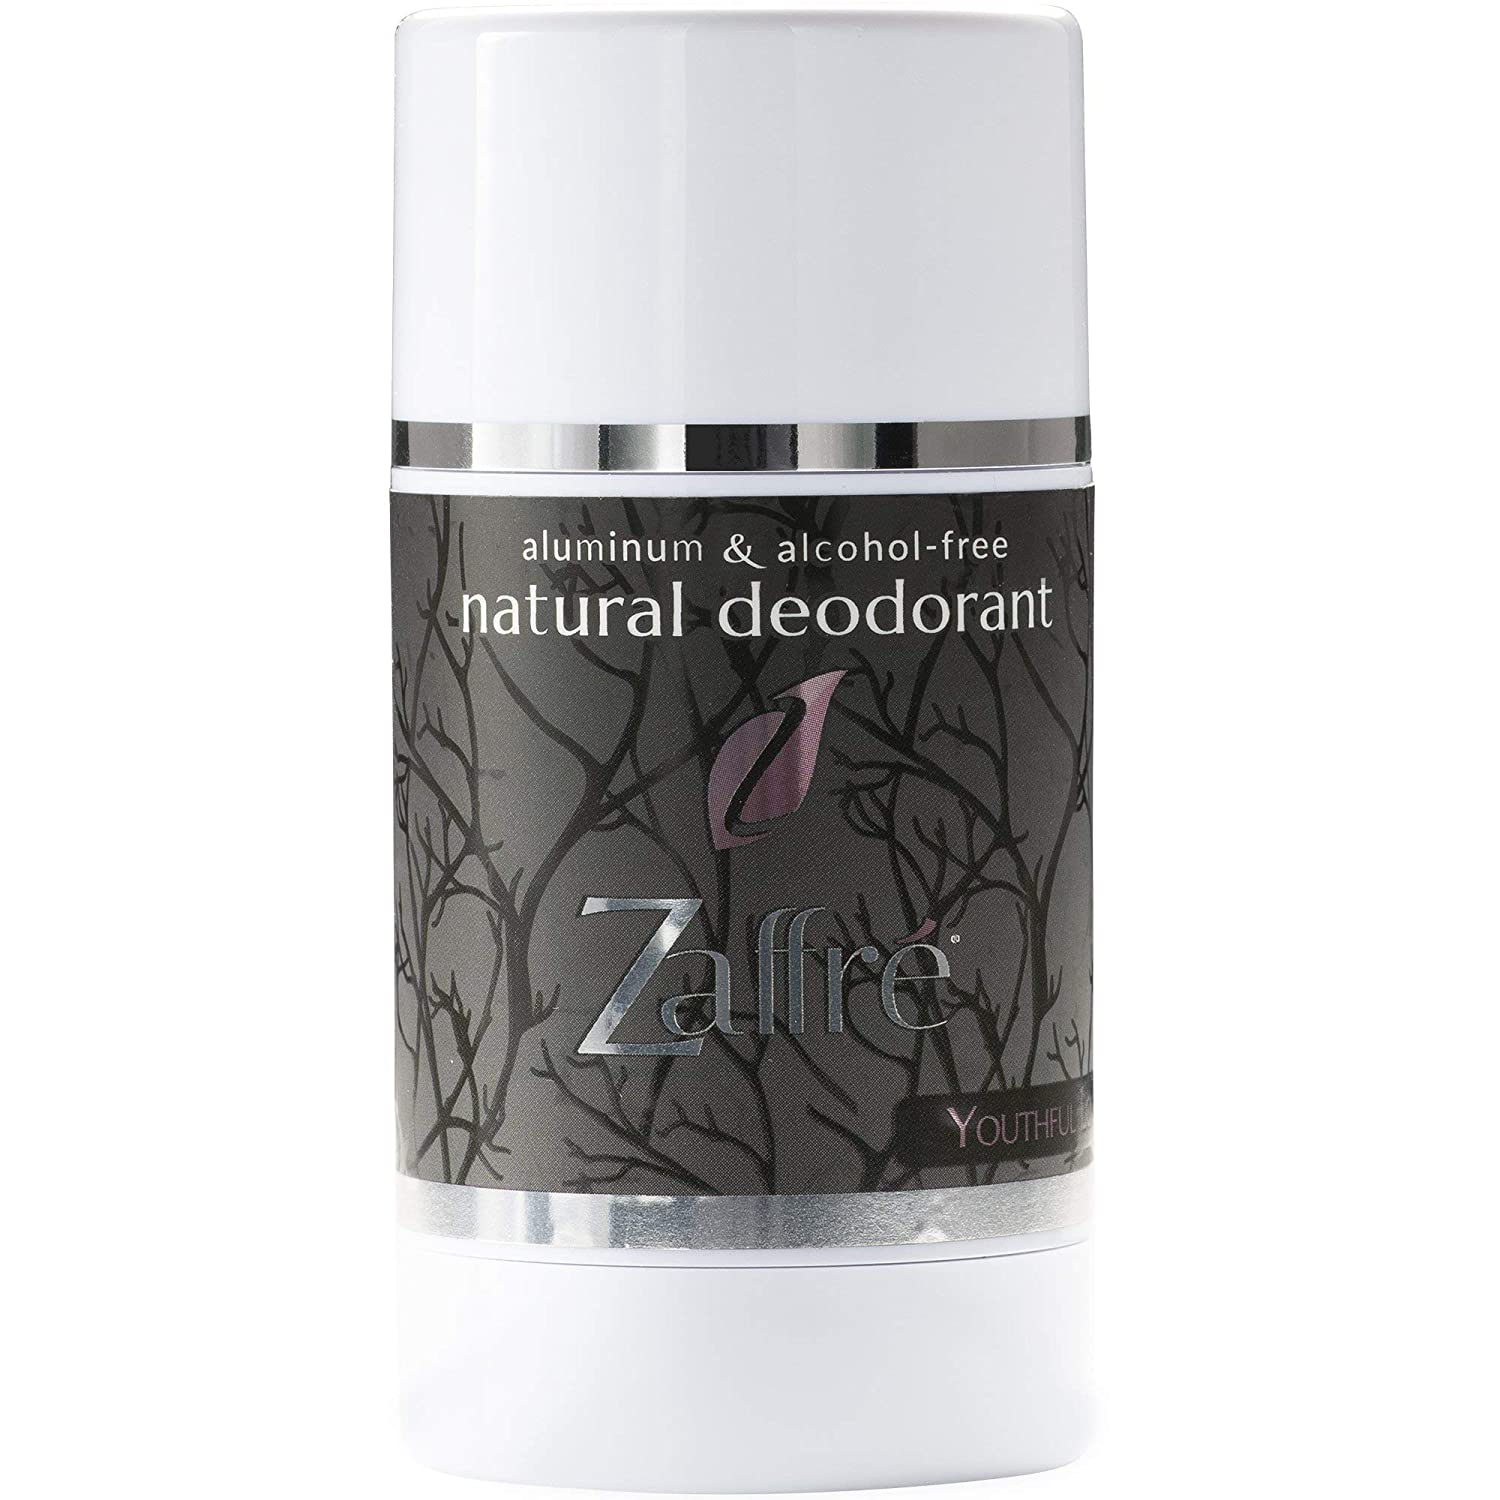 Popular products Zaffre Natural Max 78% OFF Deodorant for Men Paraben - Women and Aluminum